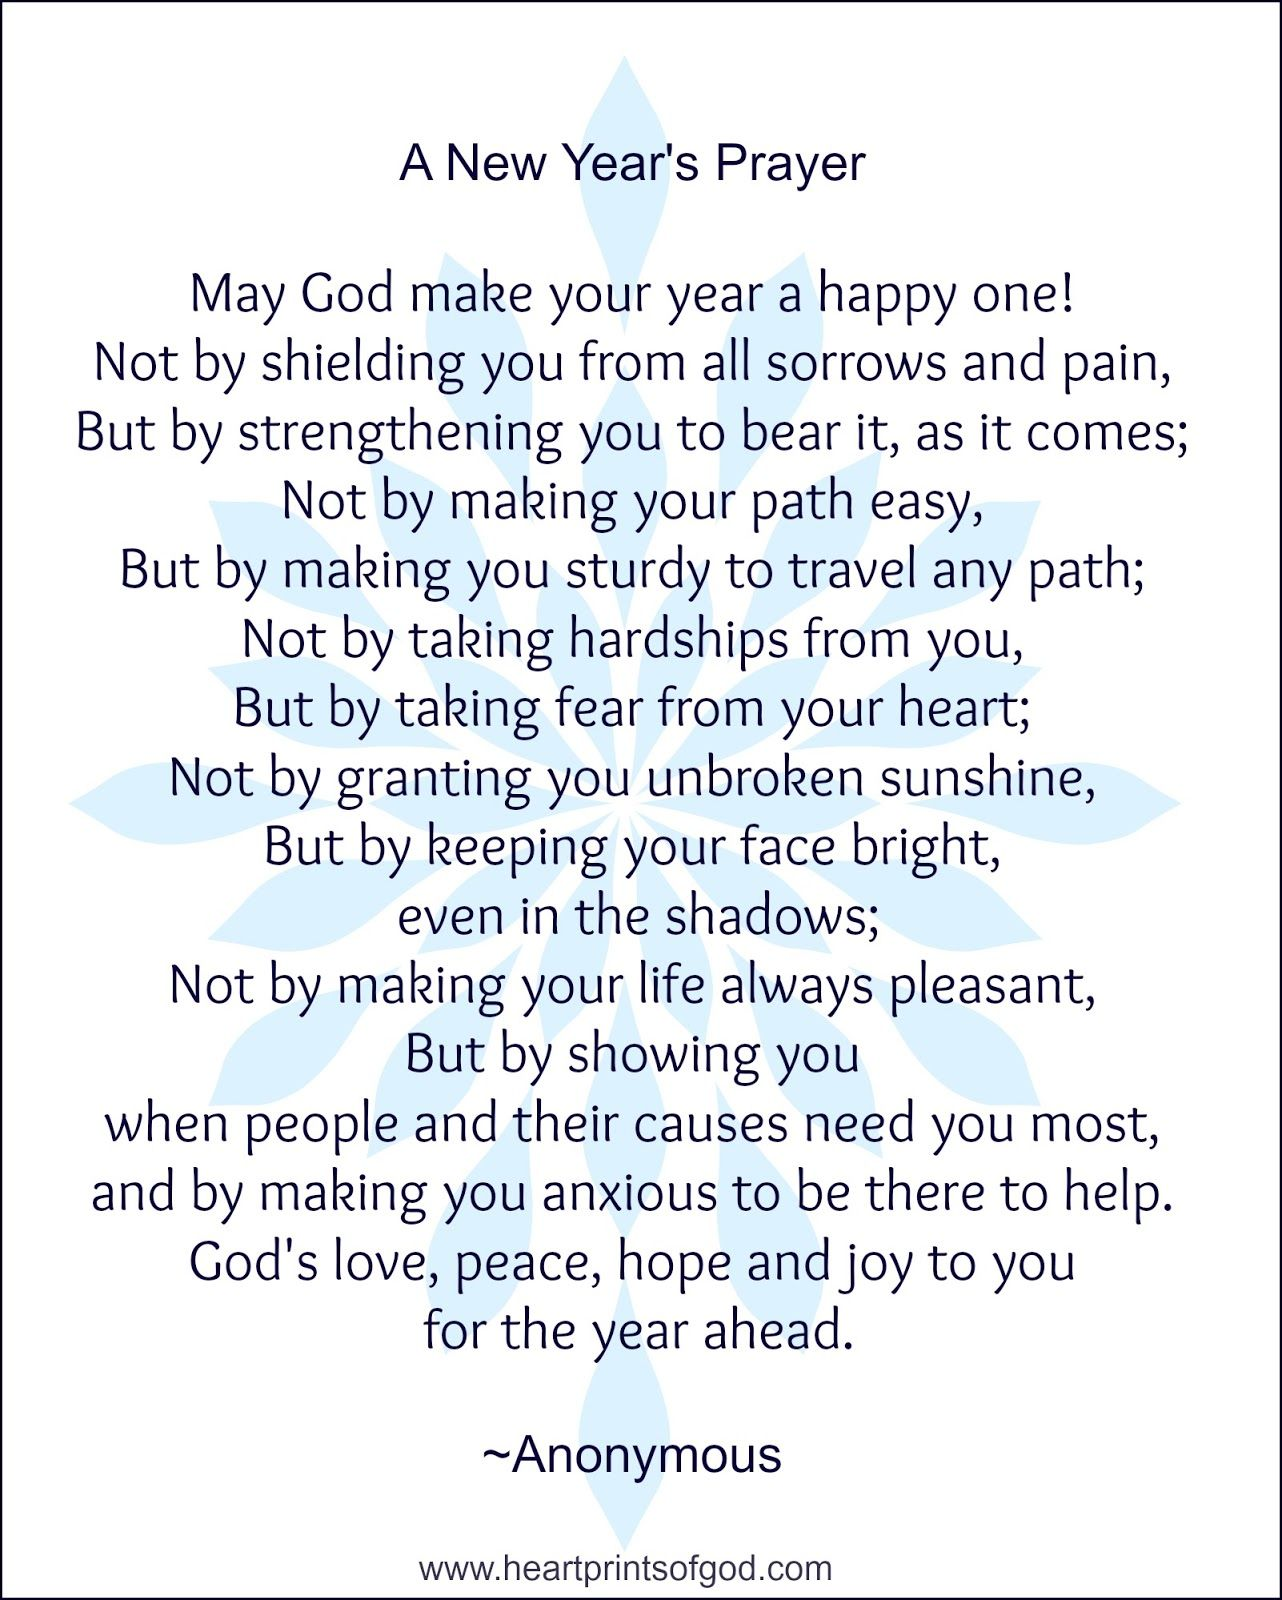 A New Year's Prayer for You